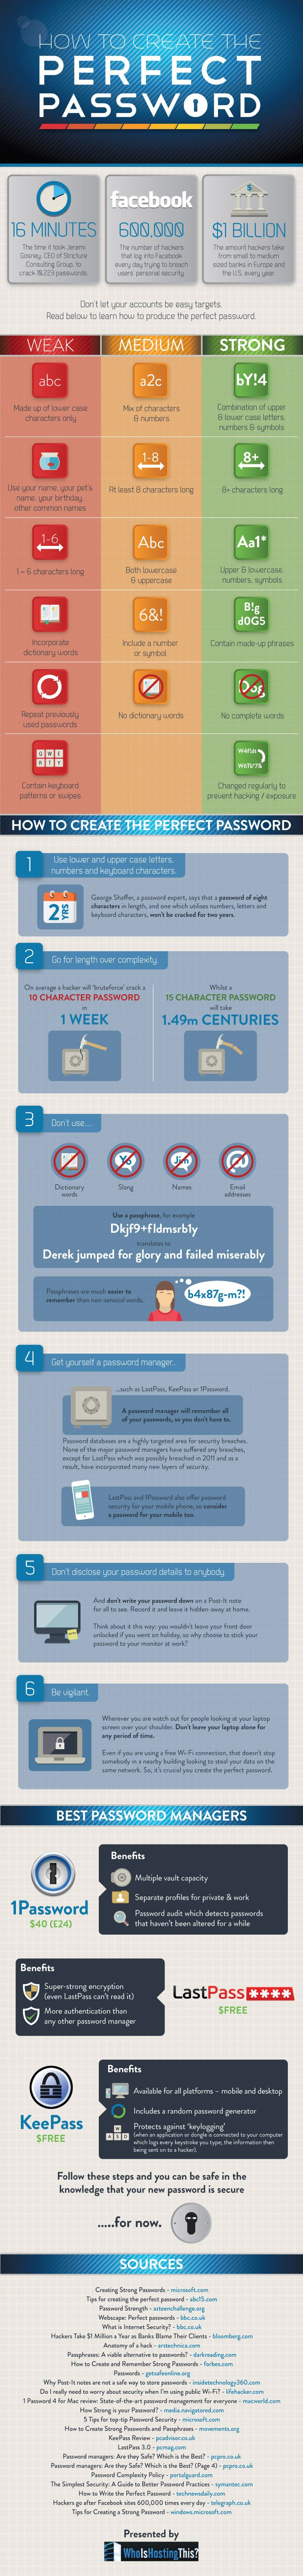 Create a strong password and protect yourself online - infographic